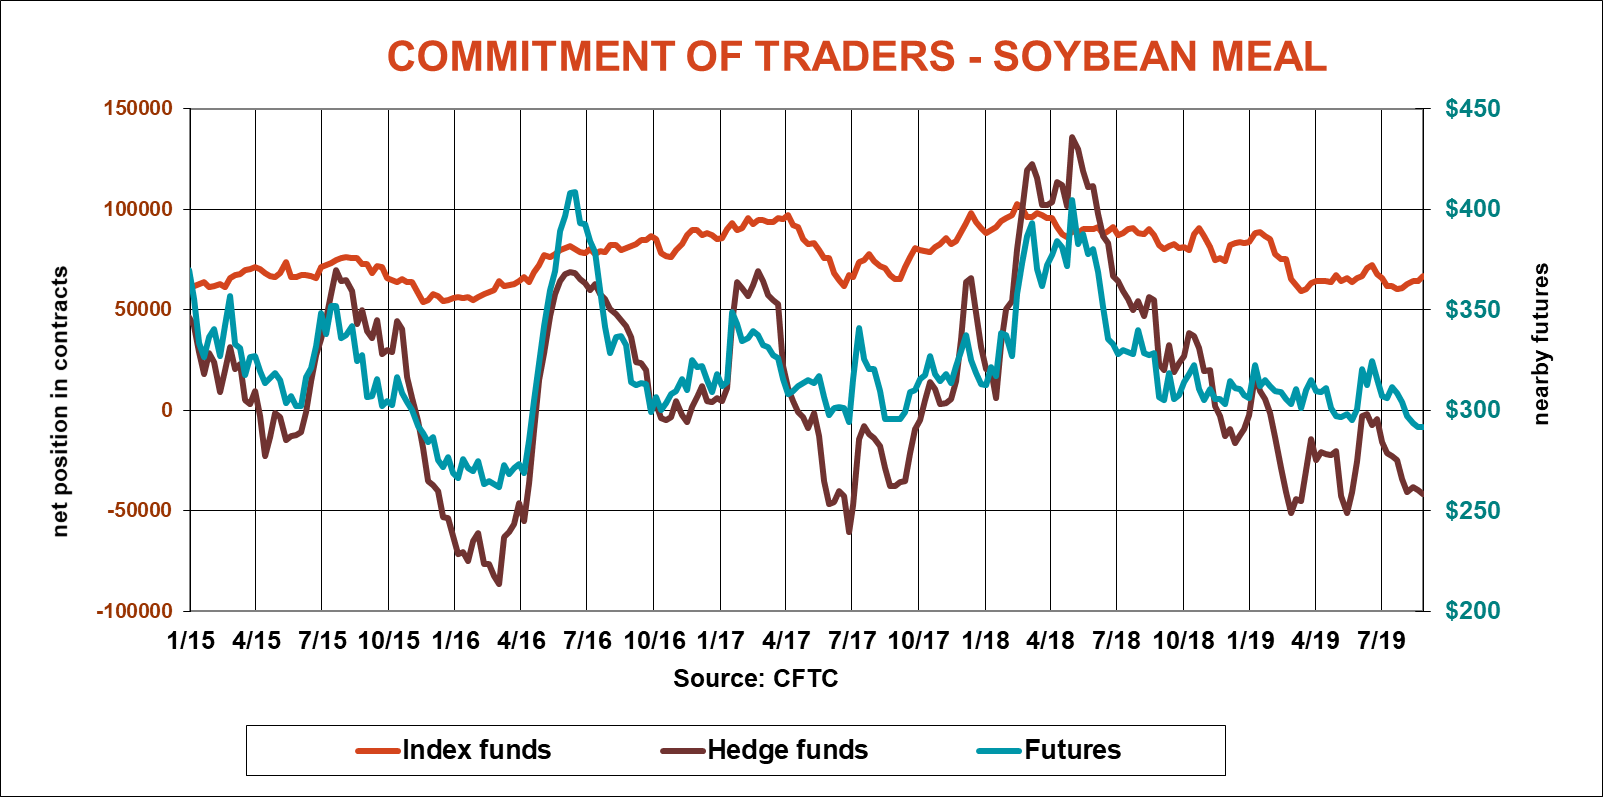 commitment-traders-soybean-meal-cftc-083019.png